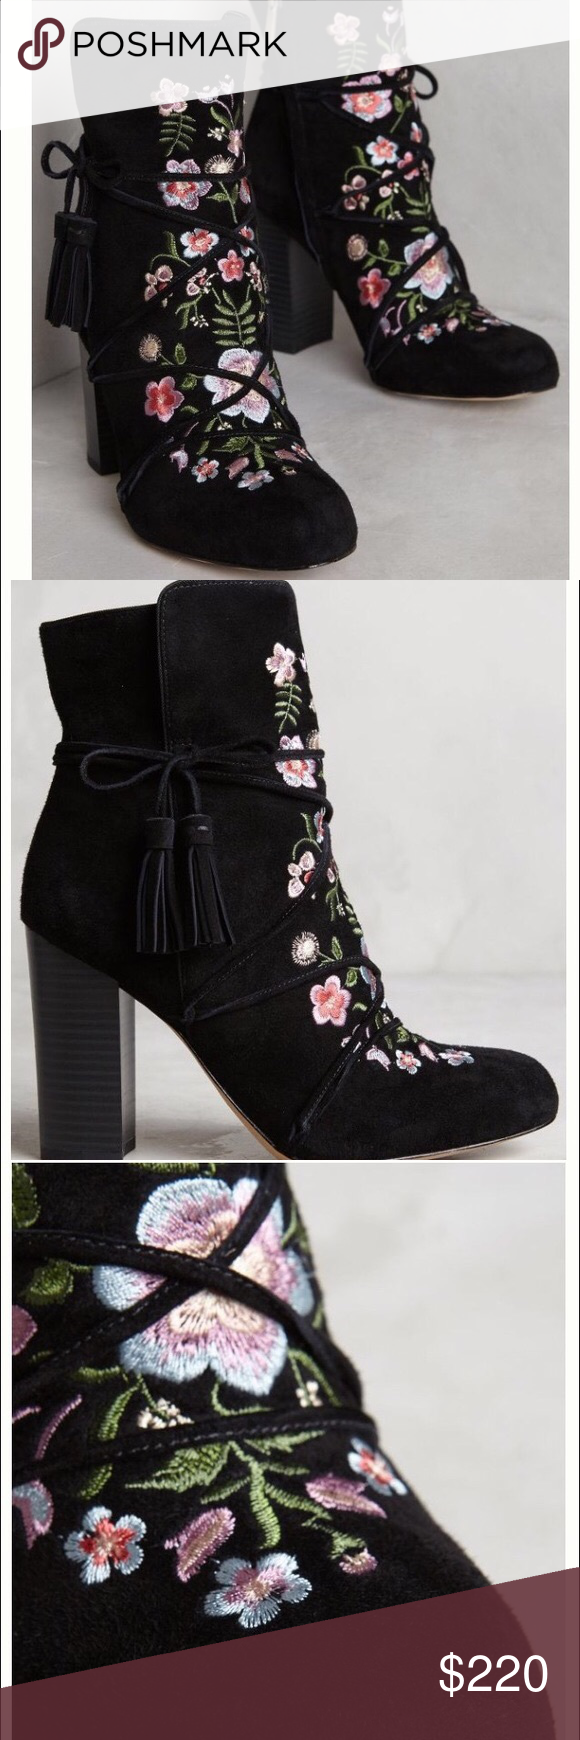 276f700e0 Anthropologie Winnie embroidered suede boots NEW The coveted Winnie Suede  Boots from Sam Edelman for Anthropologie. Brand new in box